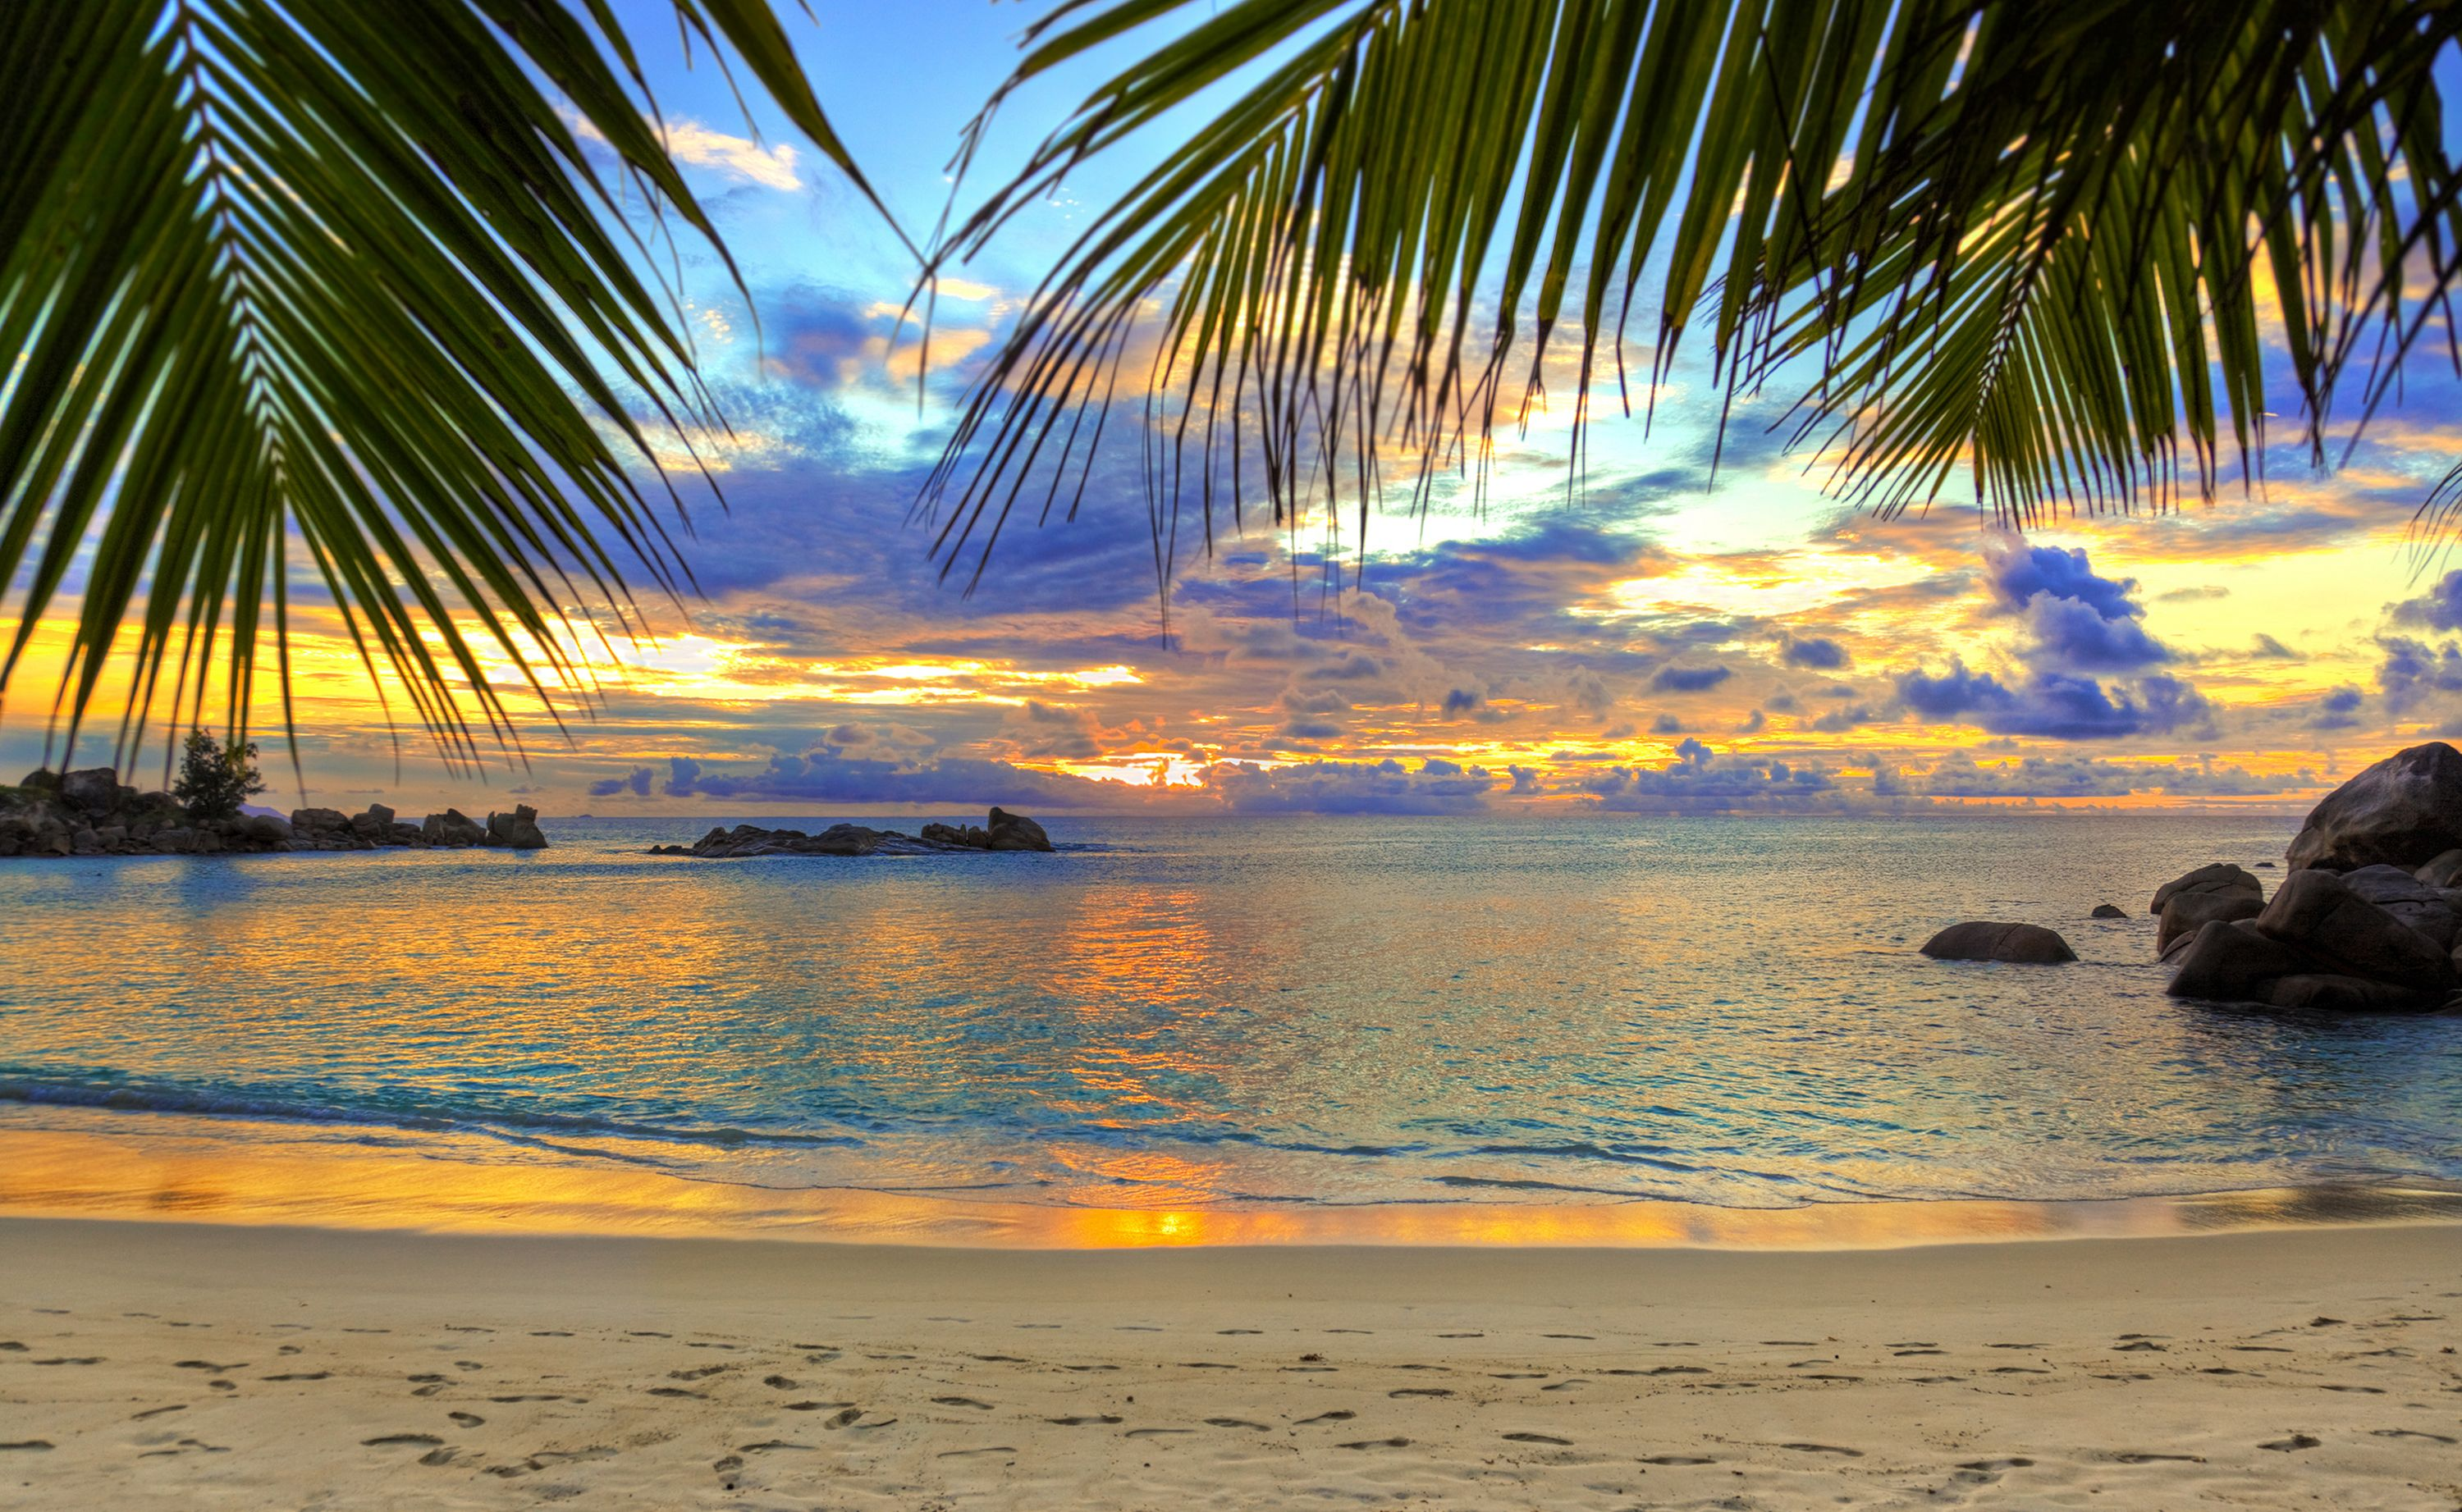 50 AMAZING BEACH WALLPAPERS FREE TO DOWNLOAD Beautiful